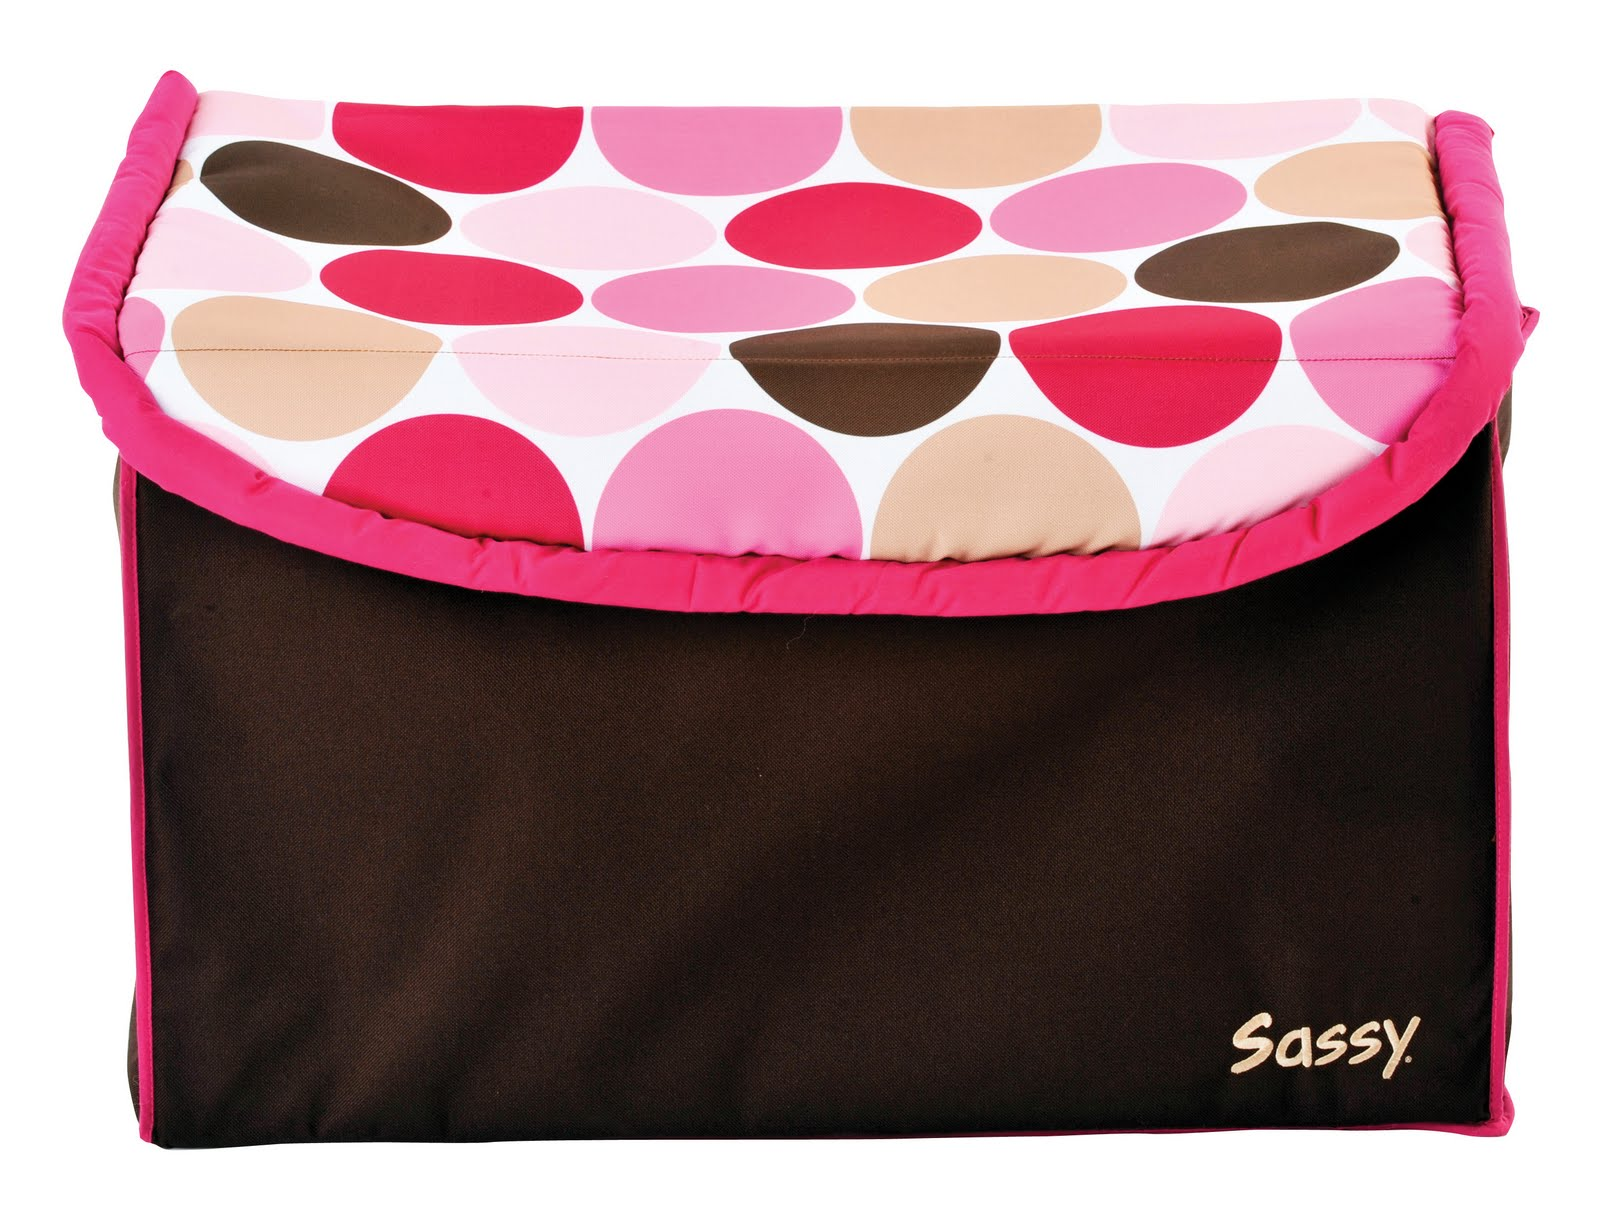 3 Garnets Amp 2 Sapphires Giveaway Amp Review Sassy Soft